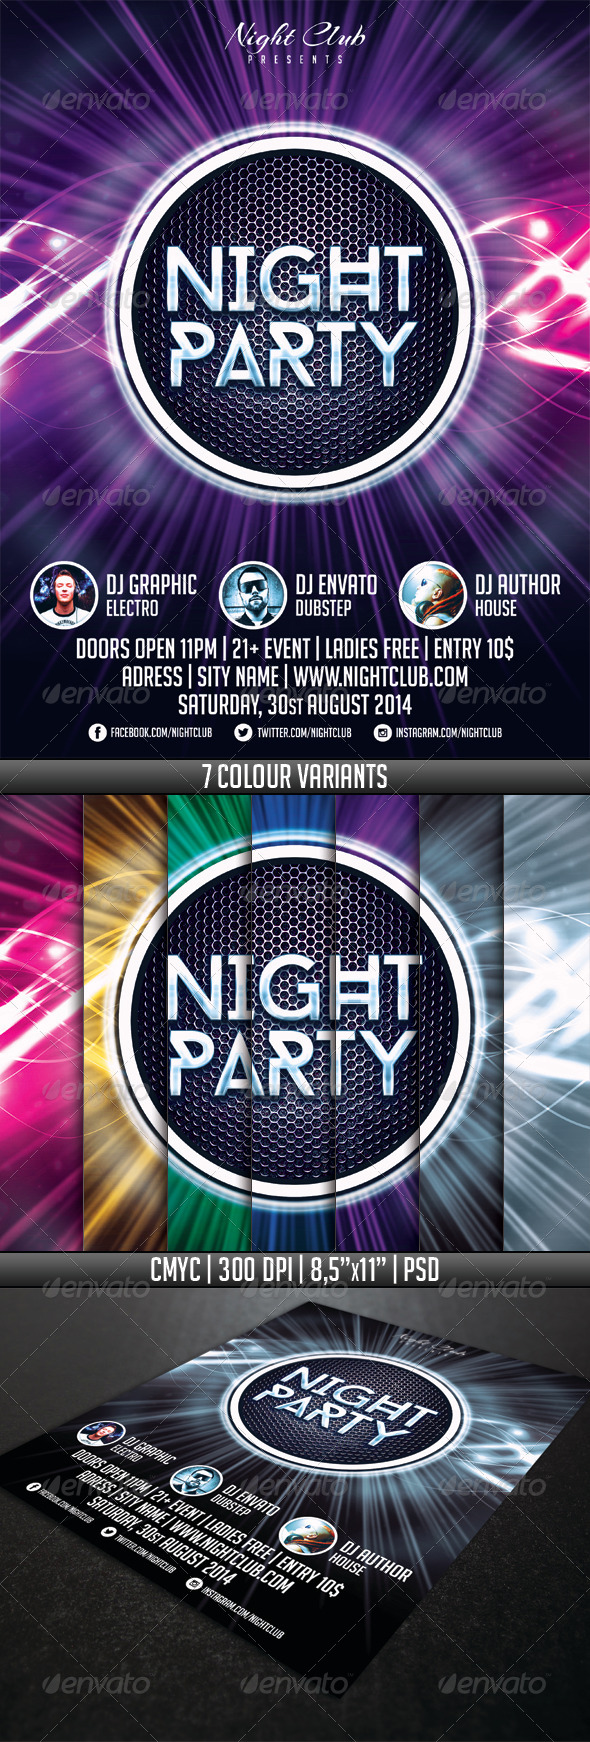 Night Party Flyer Template - Events Flyers